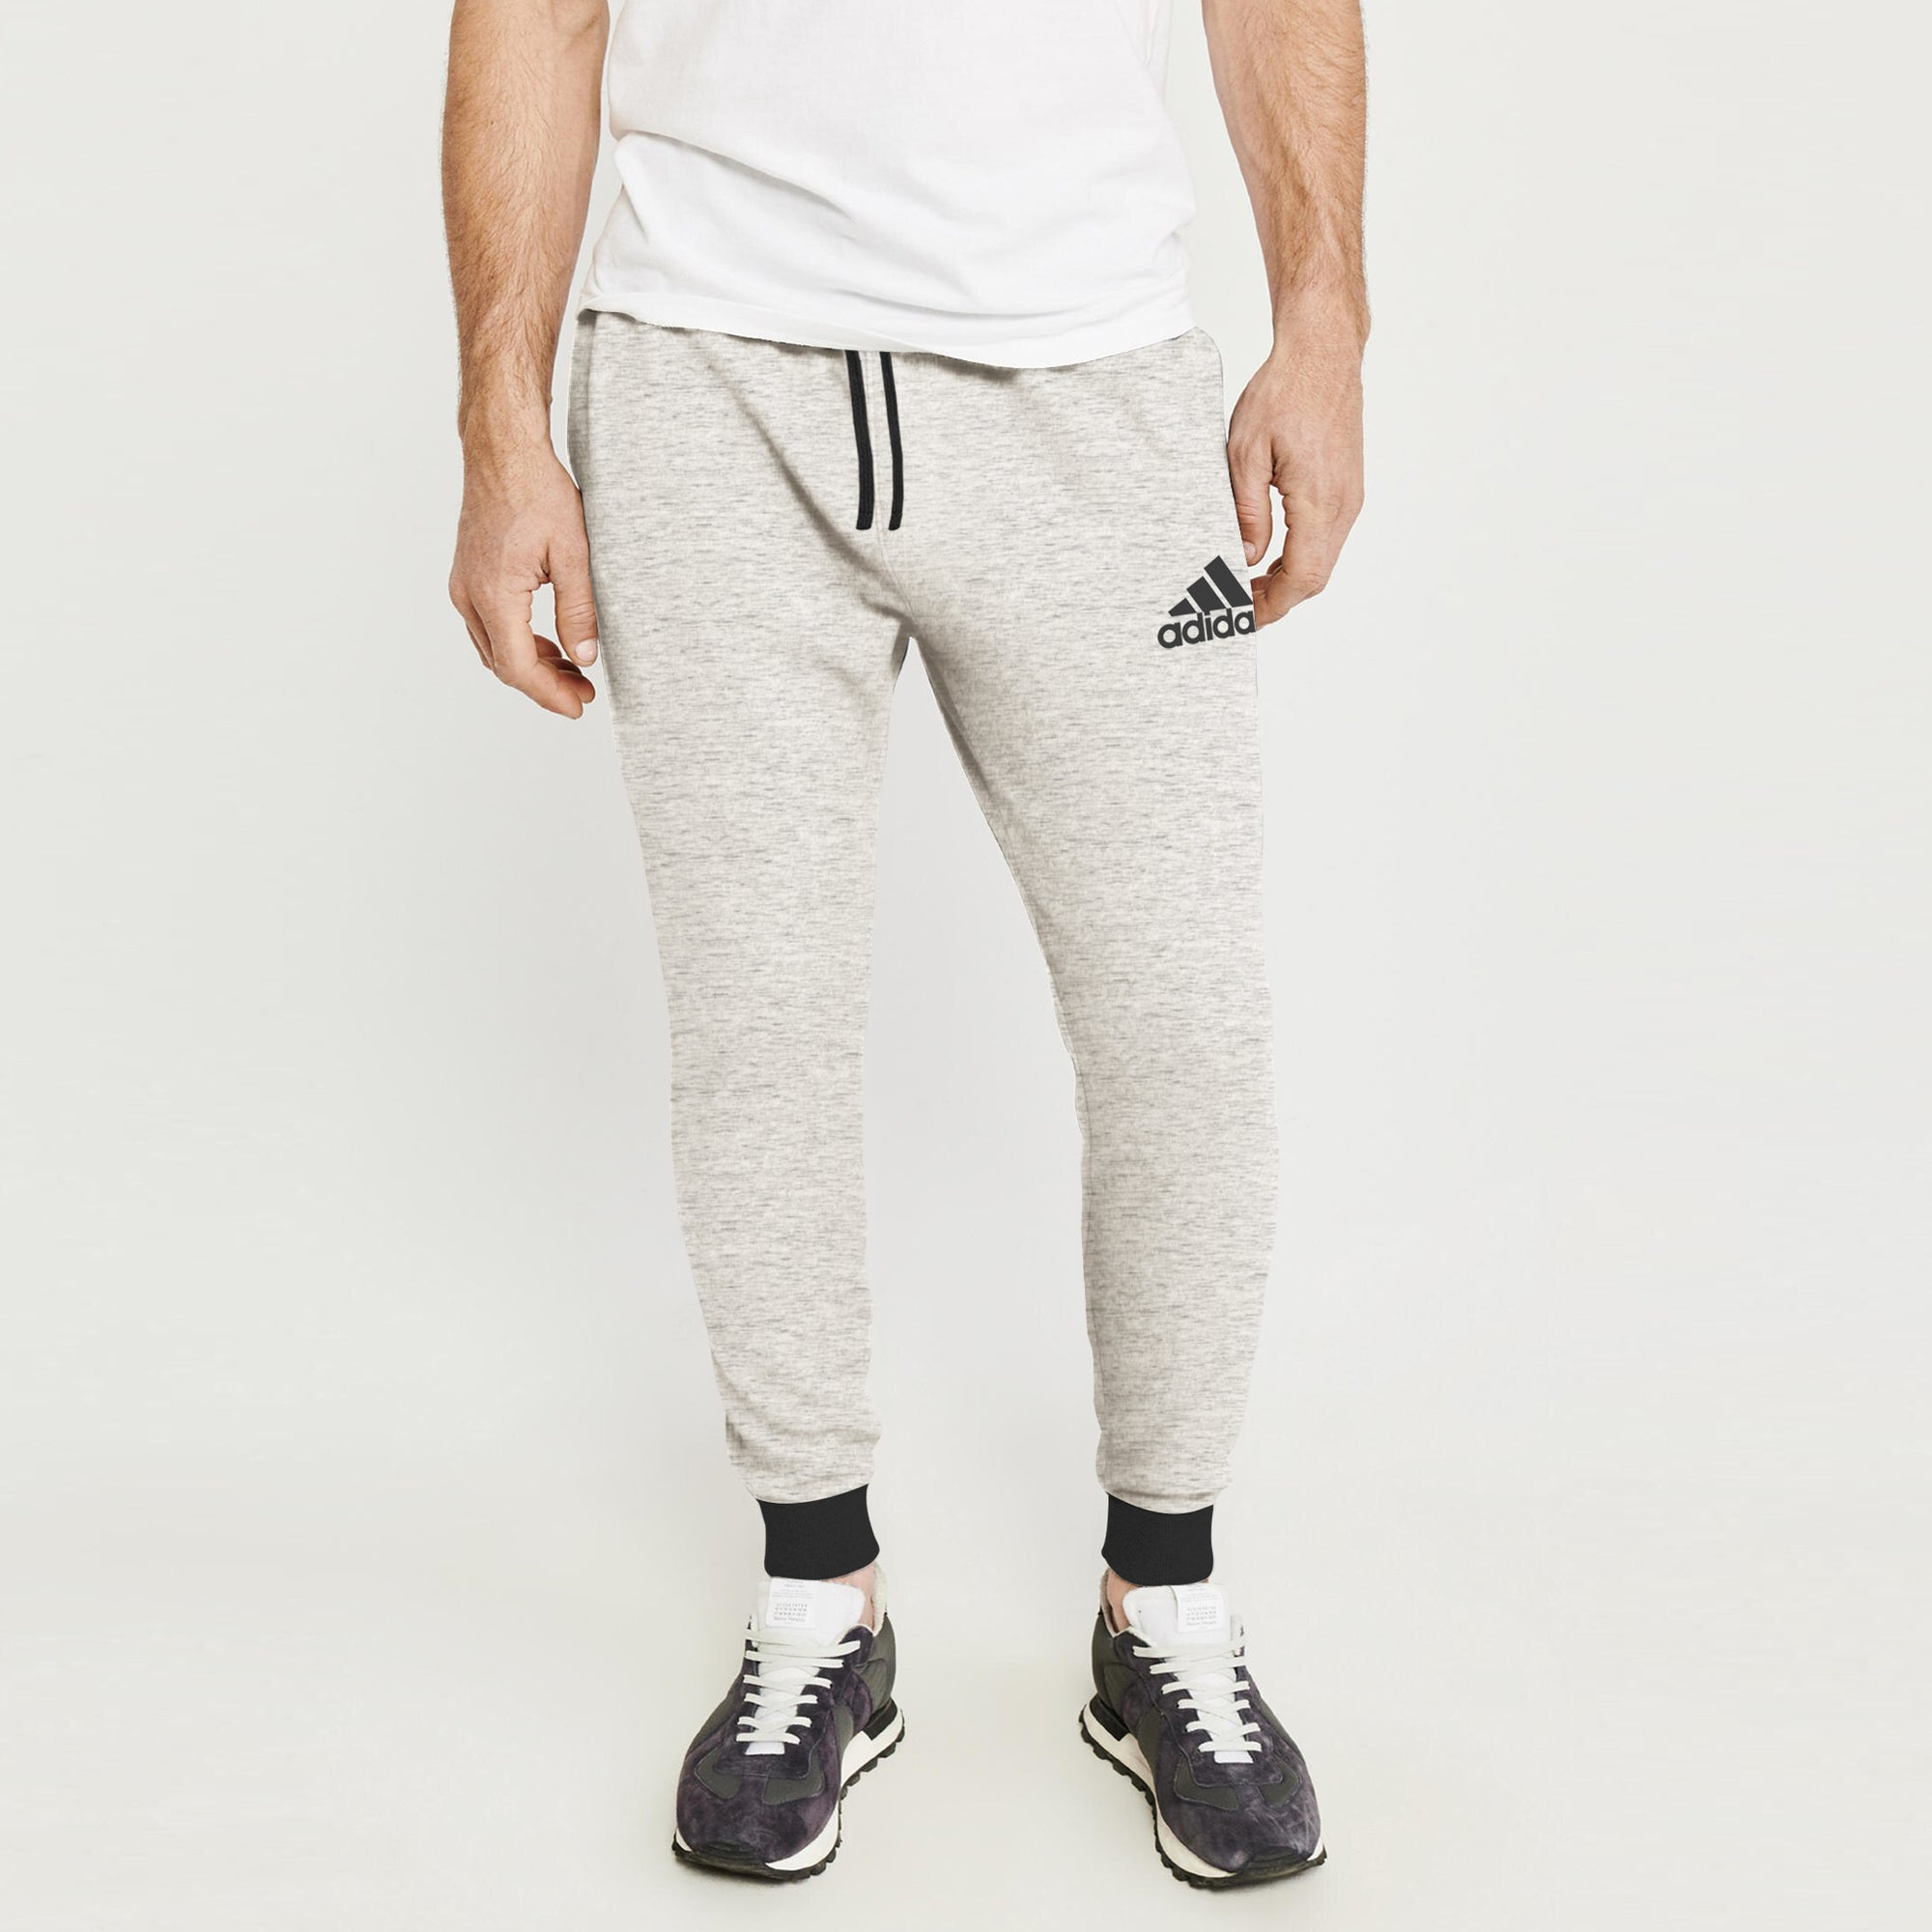 Adidas Single Jersey Slim Fit Jogger Trouser For Men-Off White Melange With Charcoal & Pink Melange Stripe-BE8870